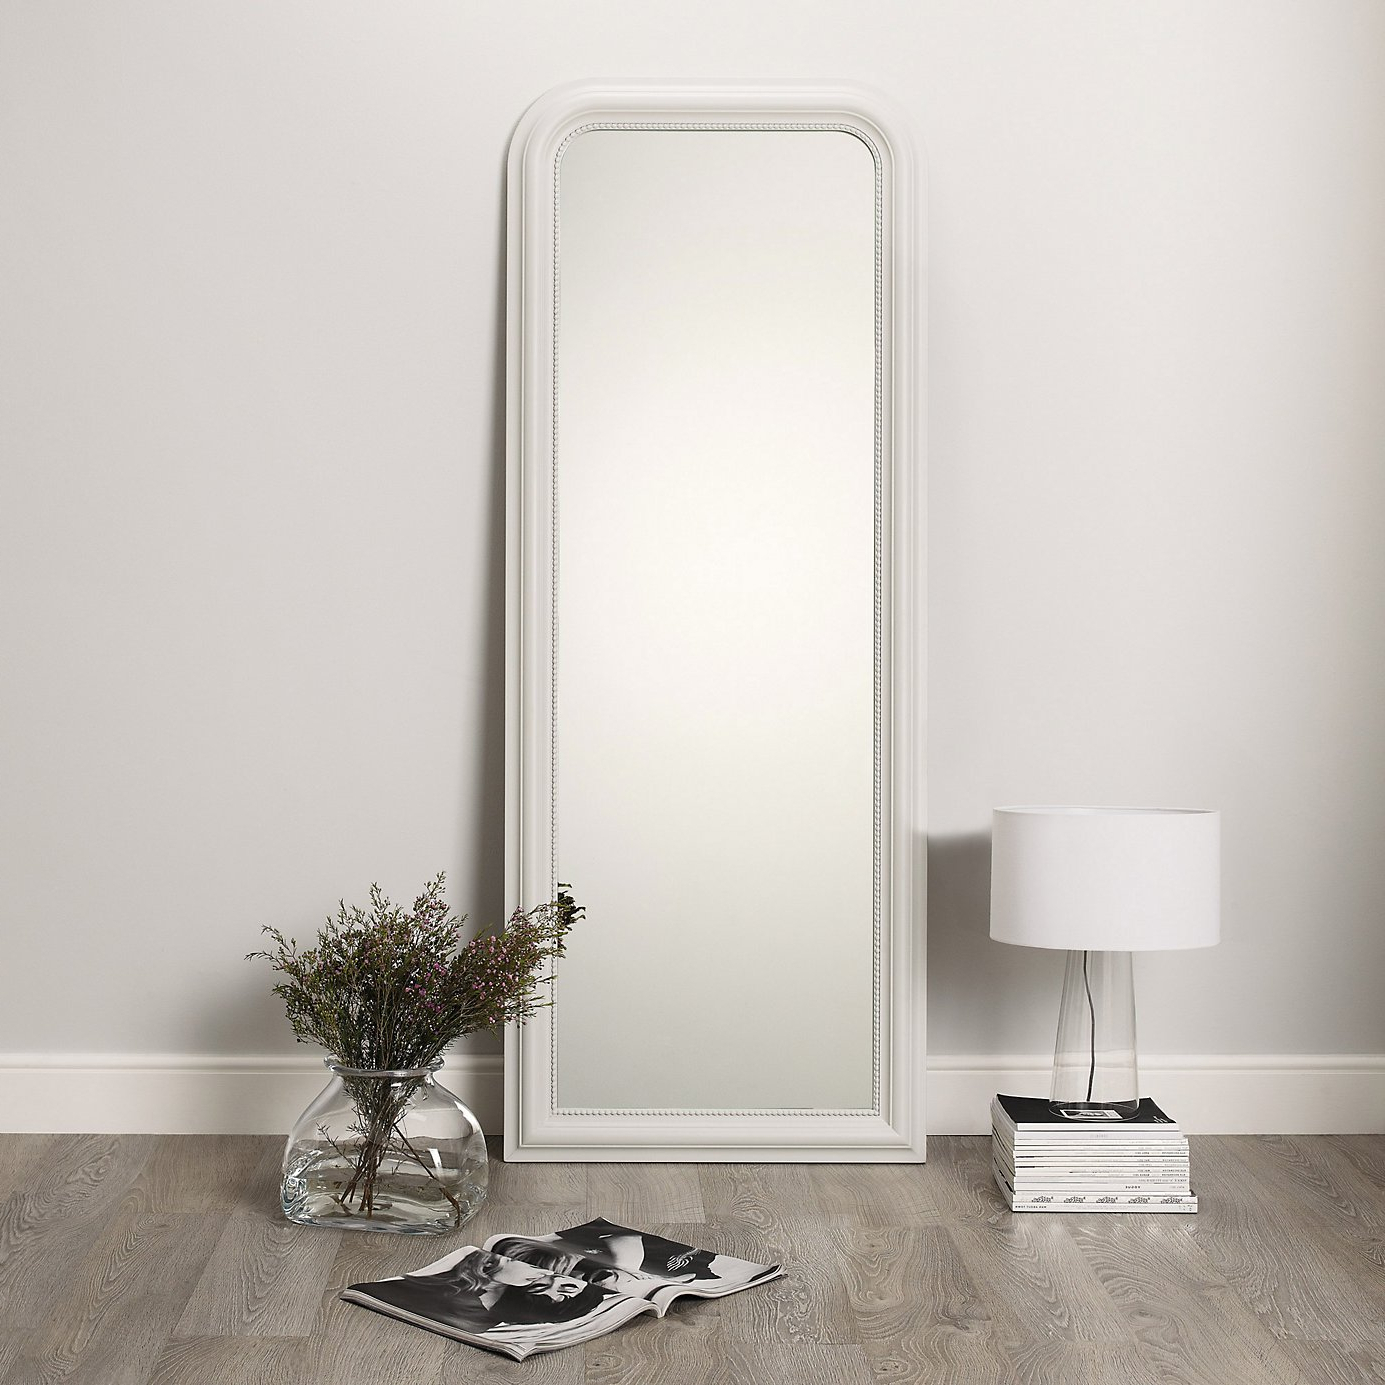 Full Length Decorative Wall Mirrors Strong Wooden Material Modern With Regard To Favorite Full Length Decorative Wall Mirrors (View 8 of 20)